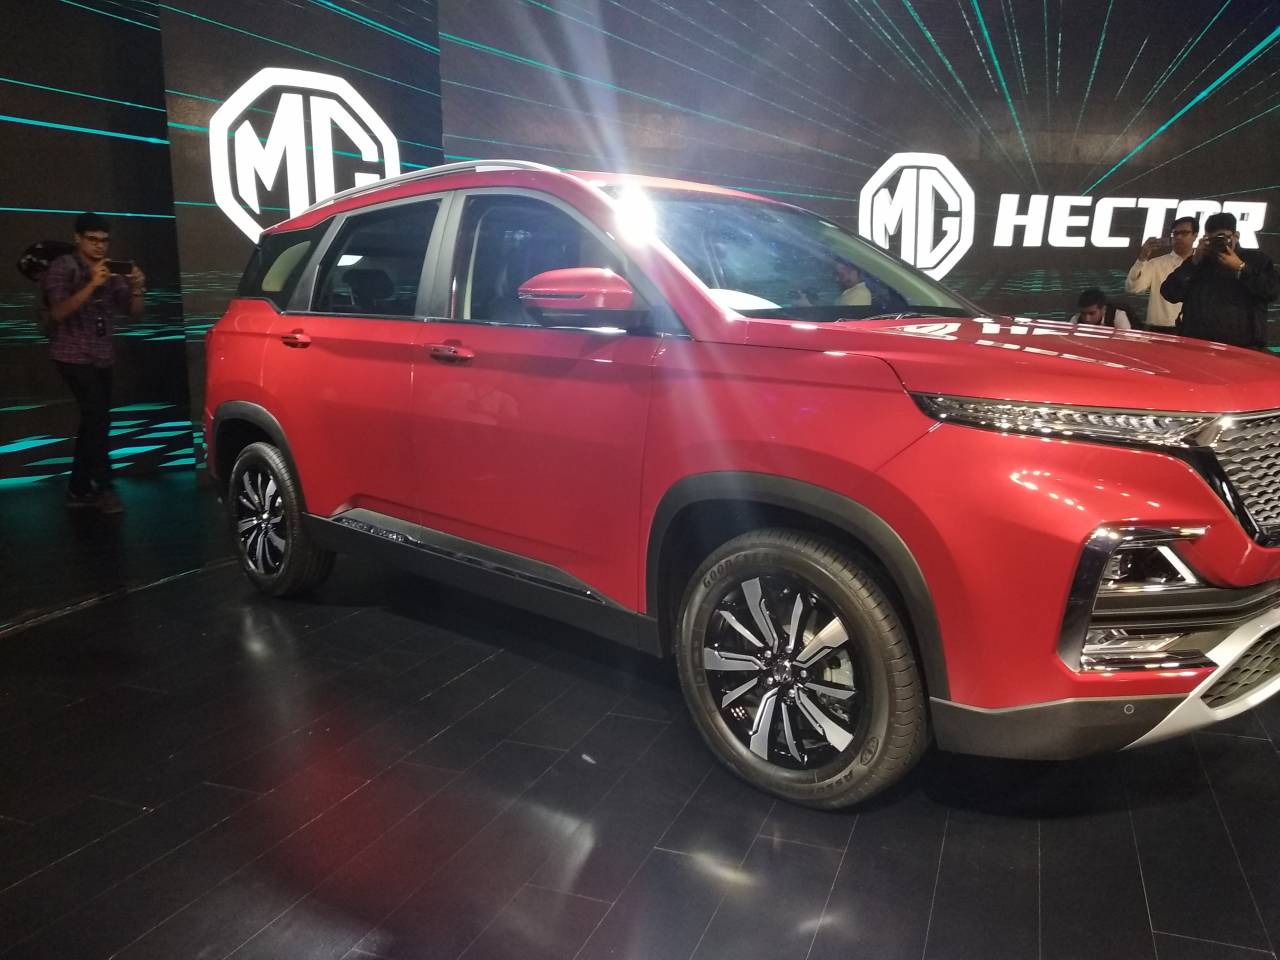 MG hopes to price the Hector competitively given the 75 percent localisation it has started production with. Even the engines are locally manufactured by the company. Pic courtesy: Moneycontrol